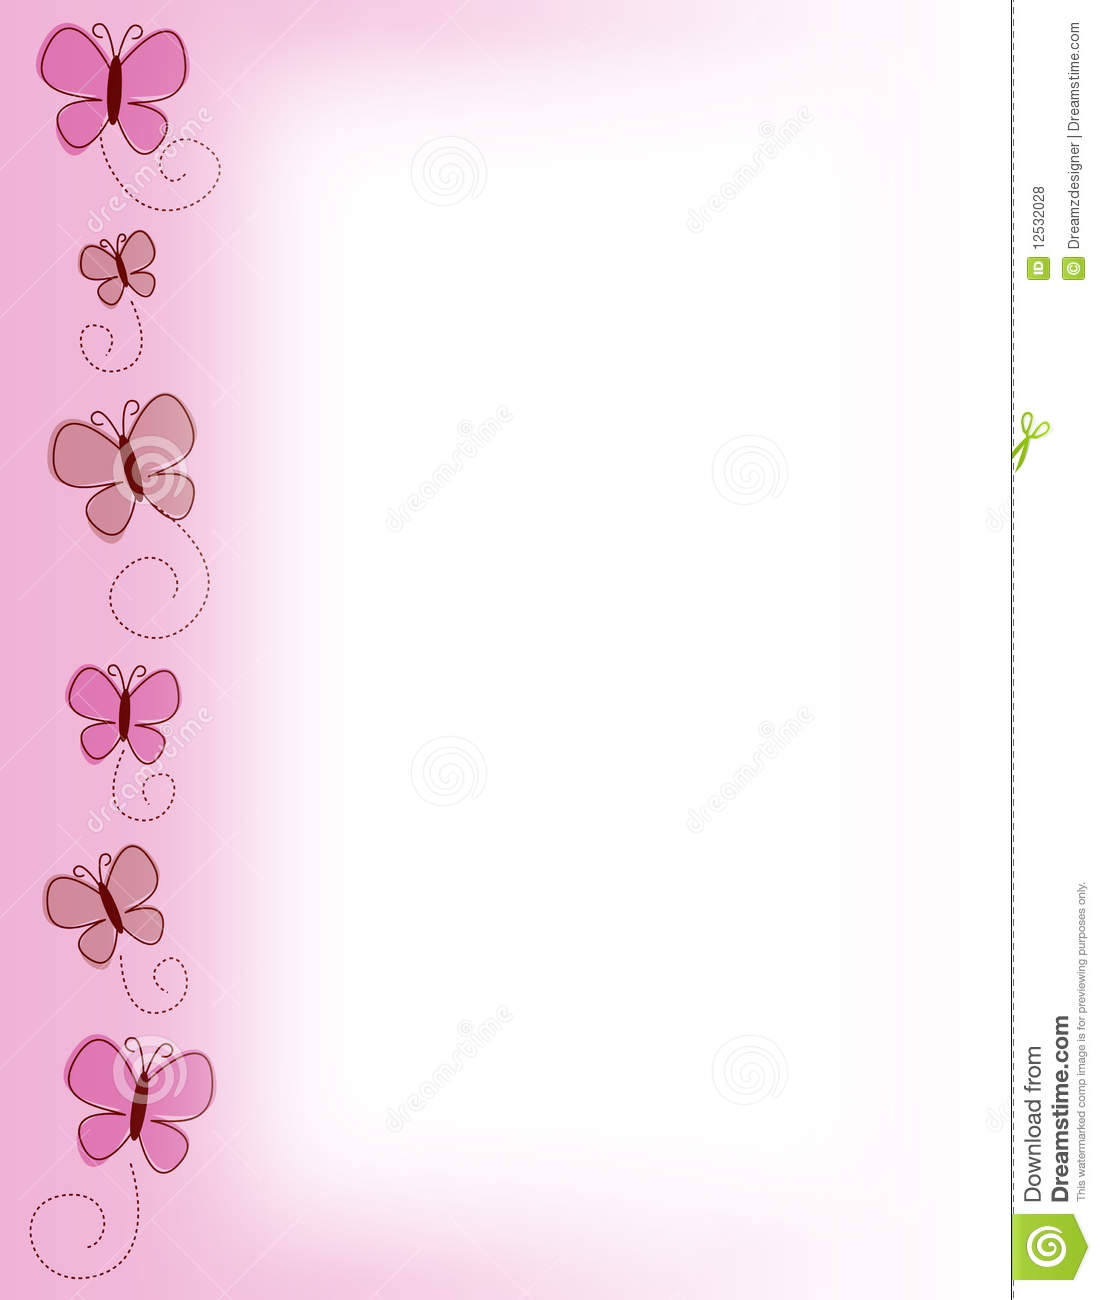 spring pink butterfly border stock illustration